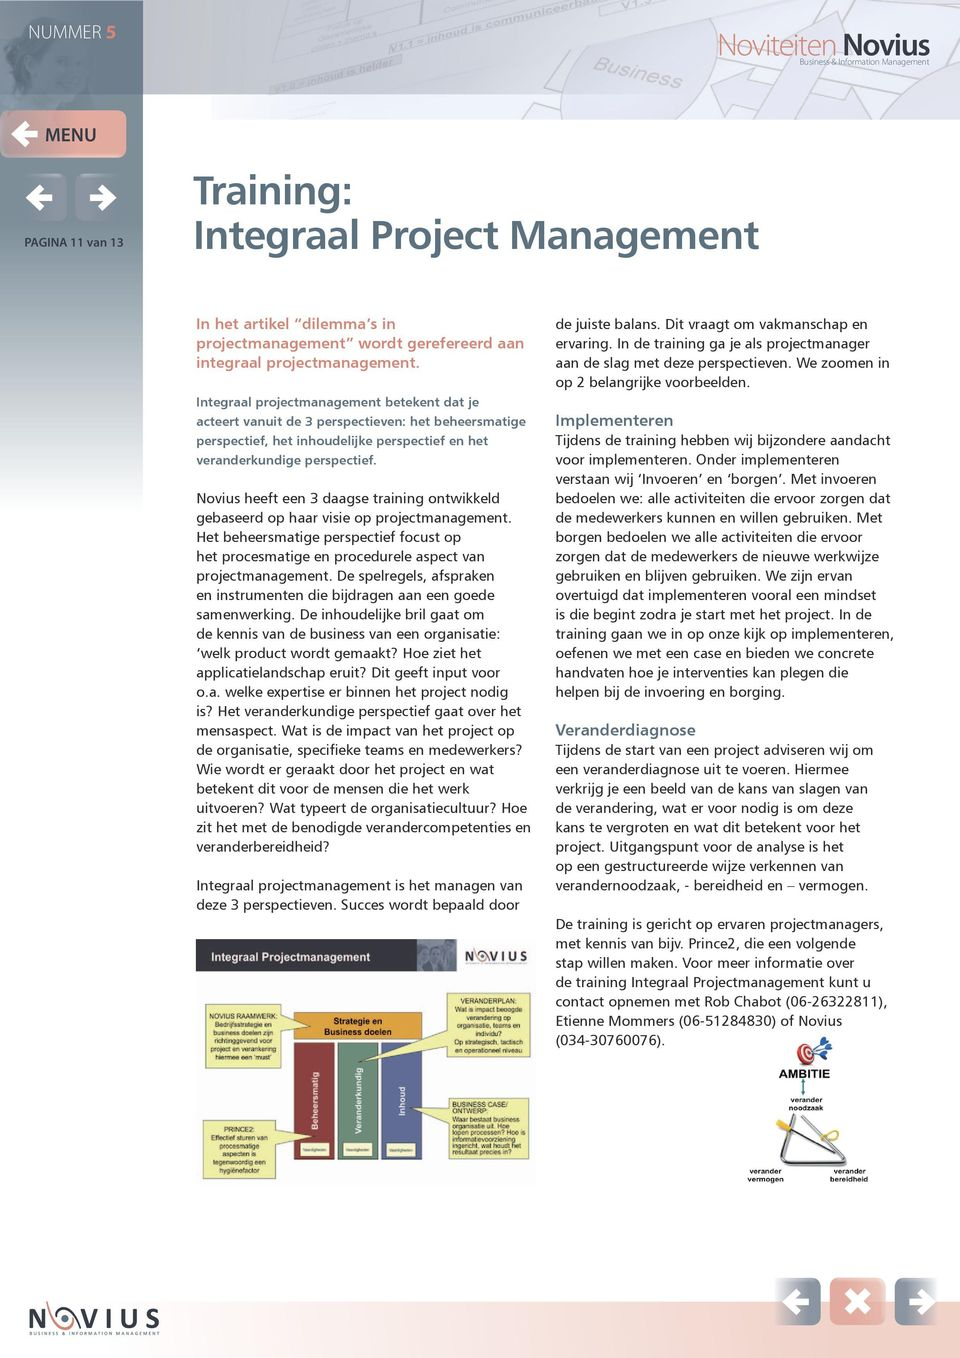 Novius heeft een 3 daagse training ontwikkeld gebaseerd op haar visie op projectmanagement. Het beheersmatige perspectief focust op het procesmatige en procedurele aspect van projectmanagement.